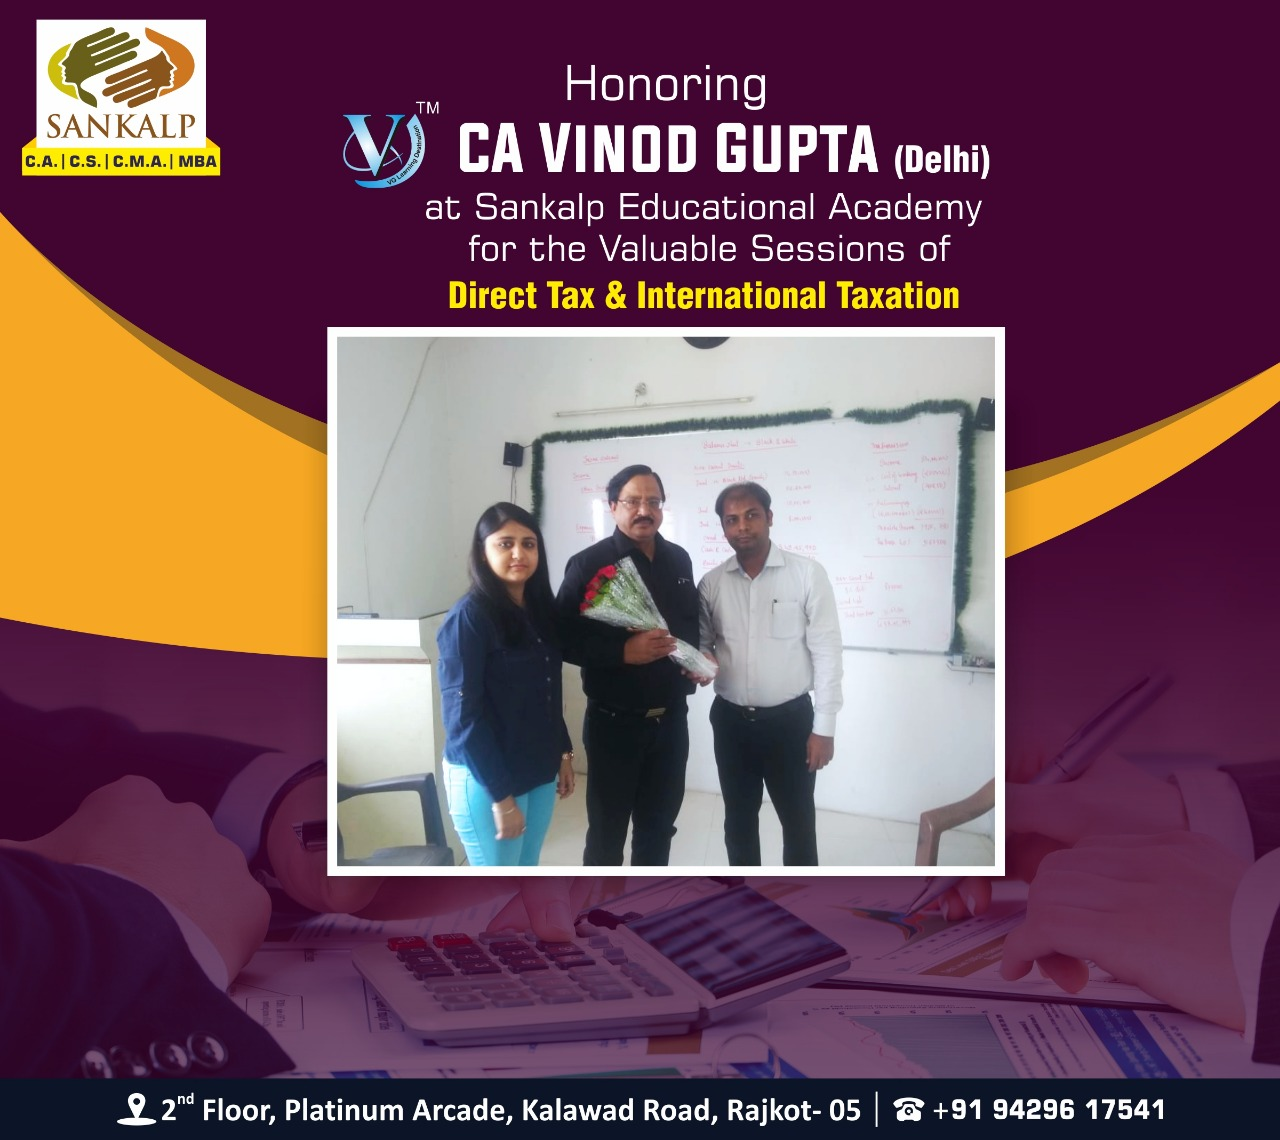 Welcome CA Vinod Gupta with Team